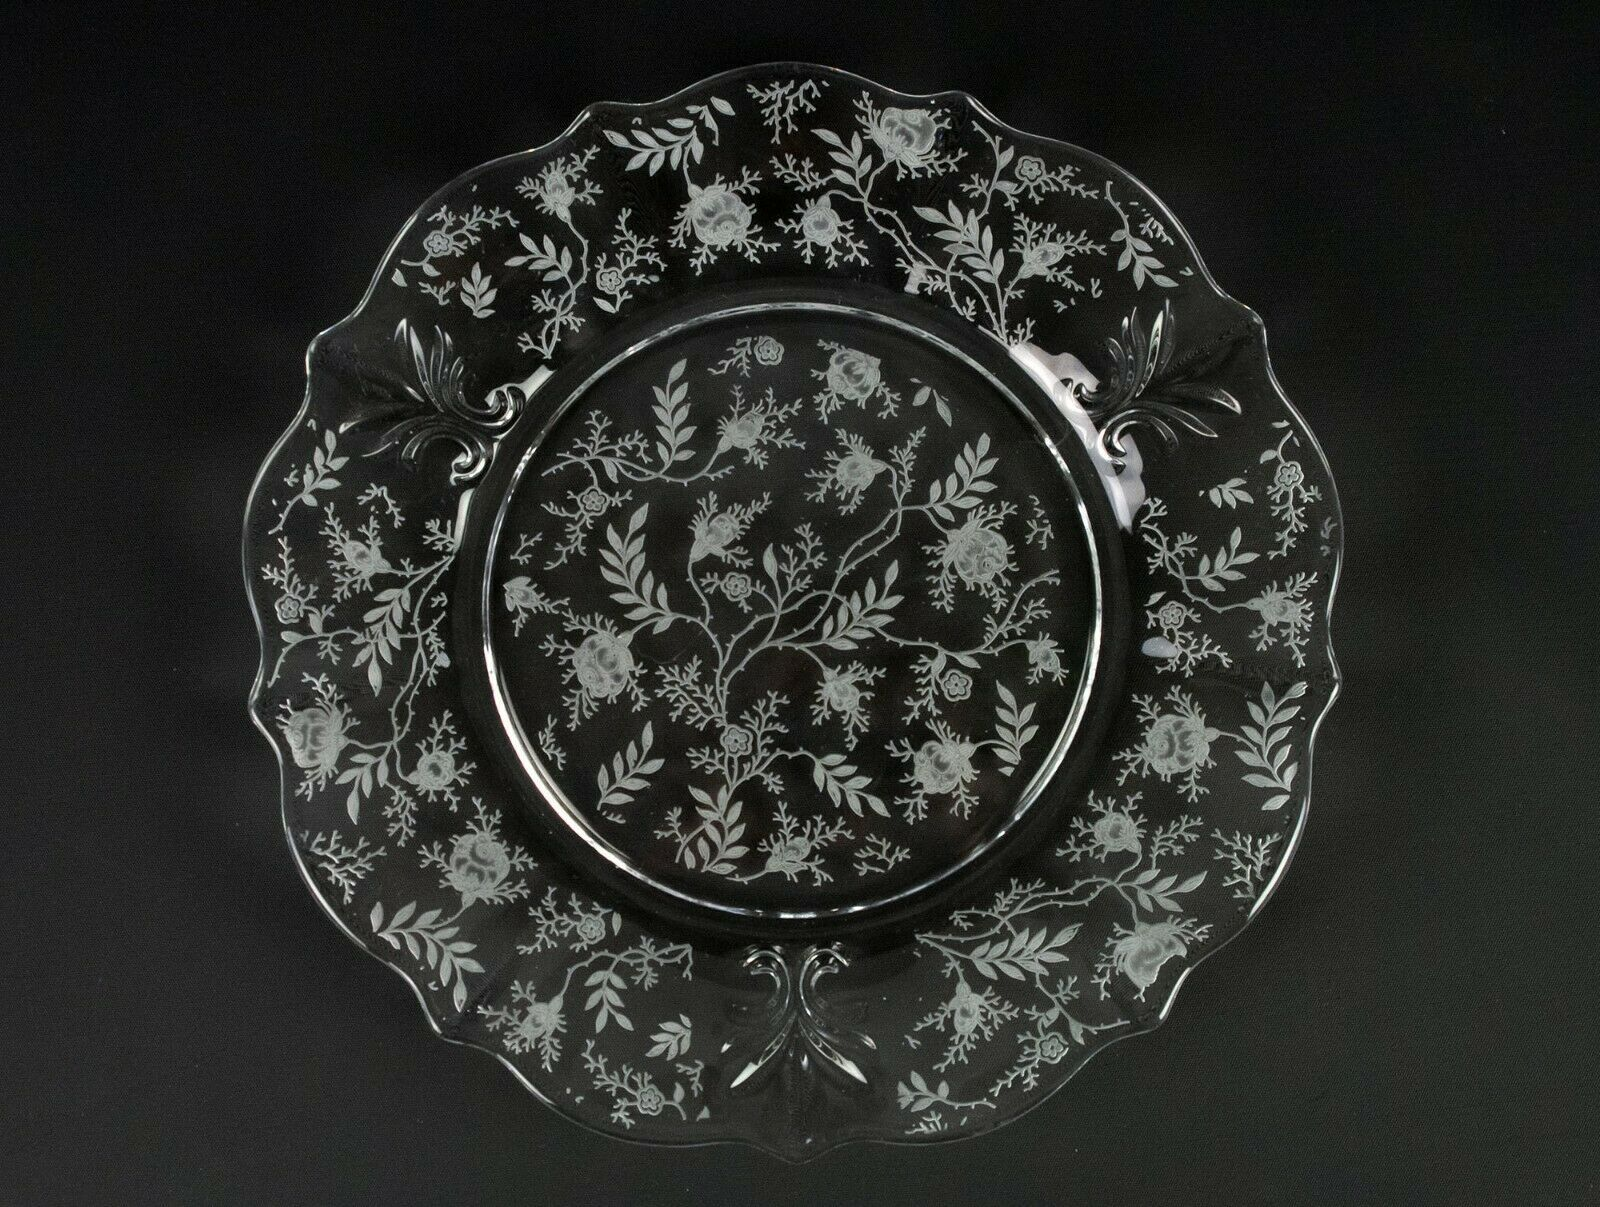 Primary image for Fostoria Chintz Dinner Plate, Vintage Elegant Etched Baroque Shape 9 1/2""